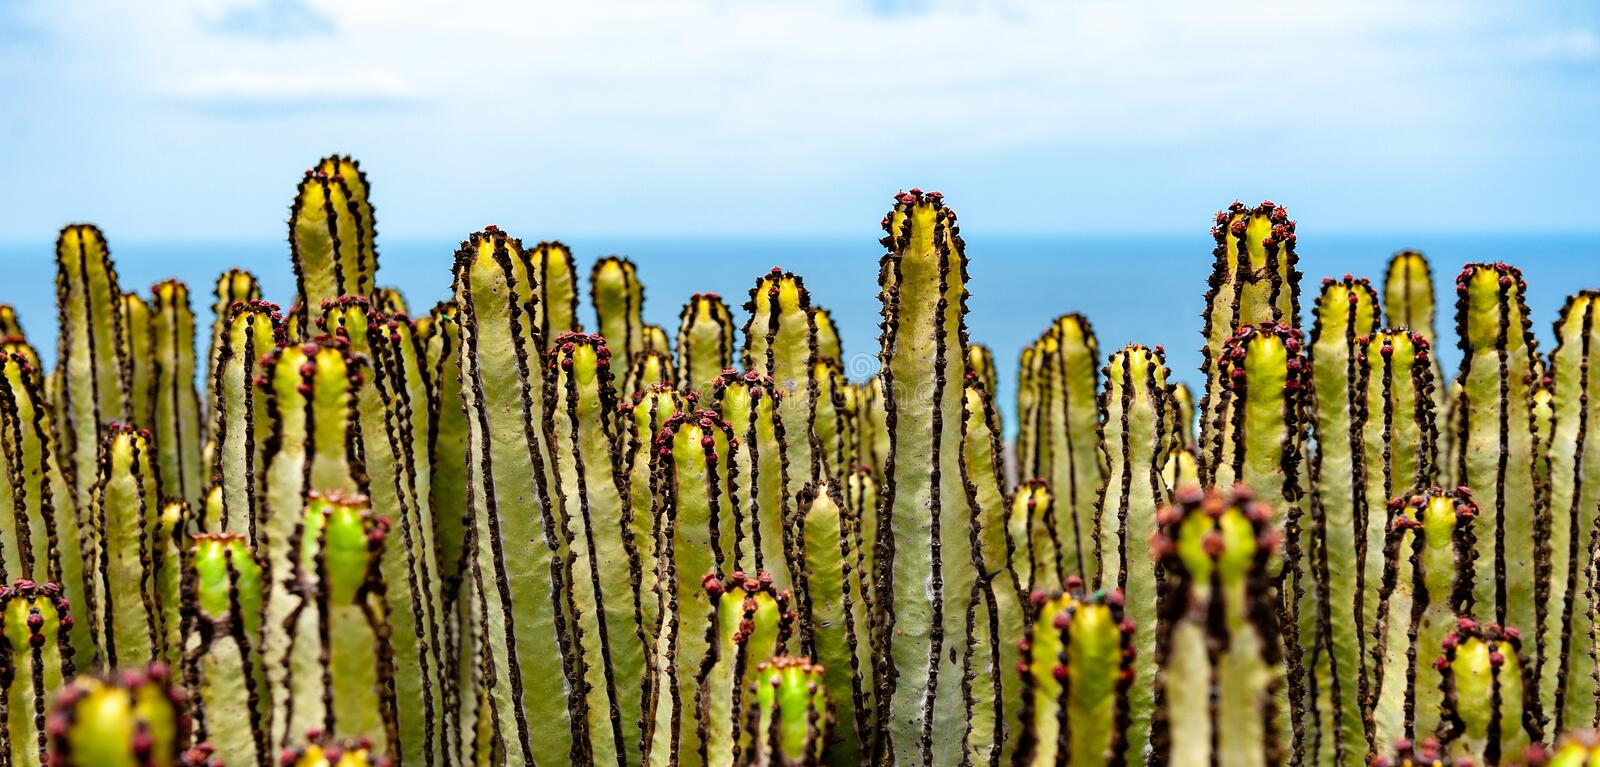 Cereus Cactus at the coast of Fuerteventura. Panoramical shot of cacti with the sea in the background. On the island of Fuerteventura, Spain royalty free stock image